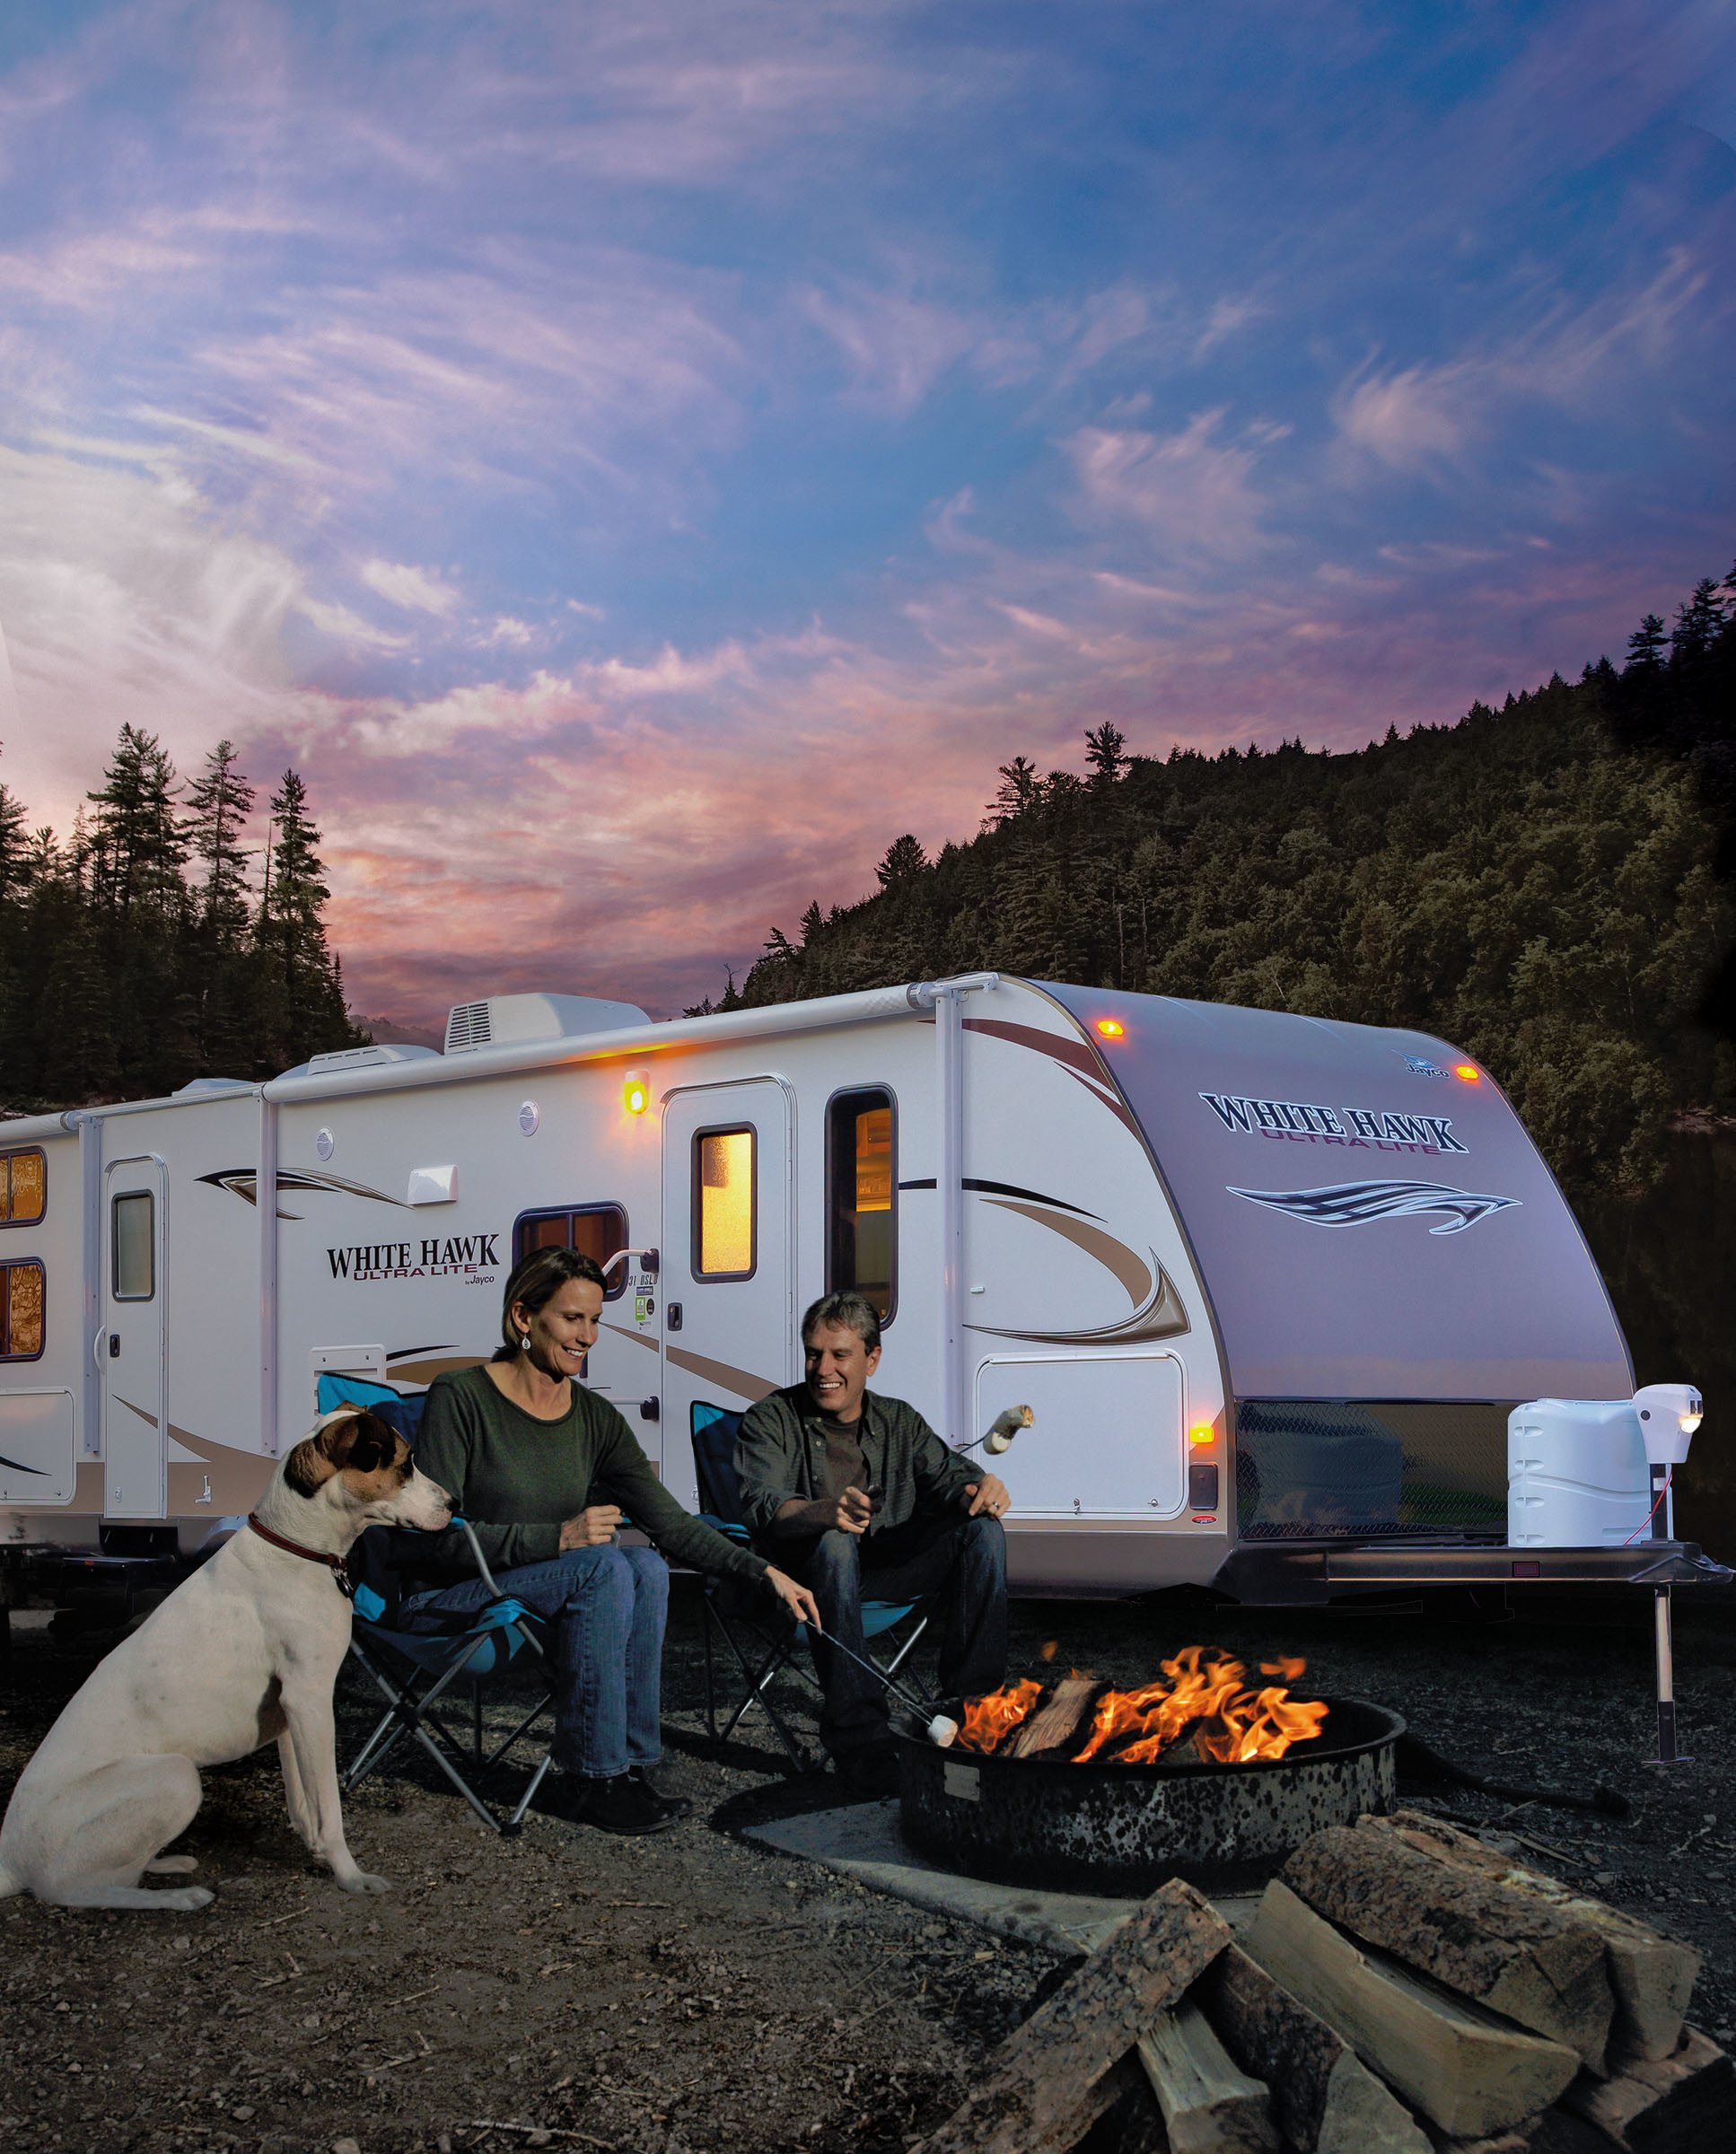 wagner u0026 39 s trailer sales  inc  in cleveland  wi  recreational vehicle sales